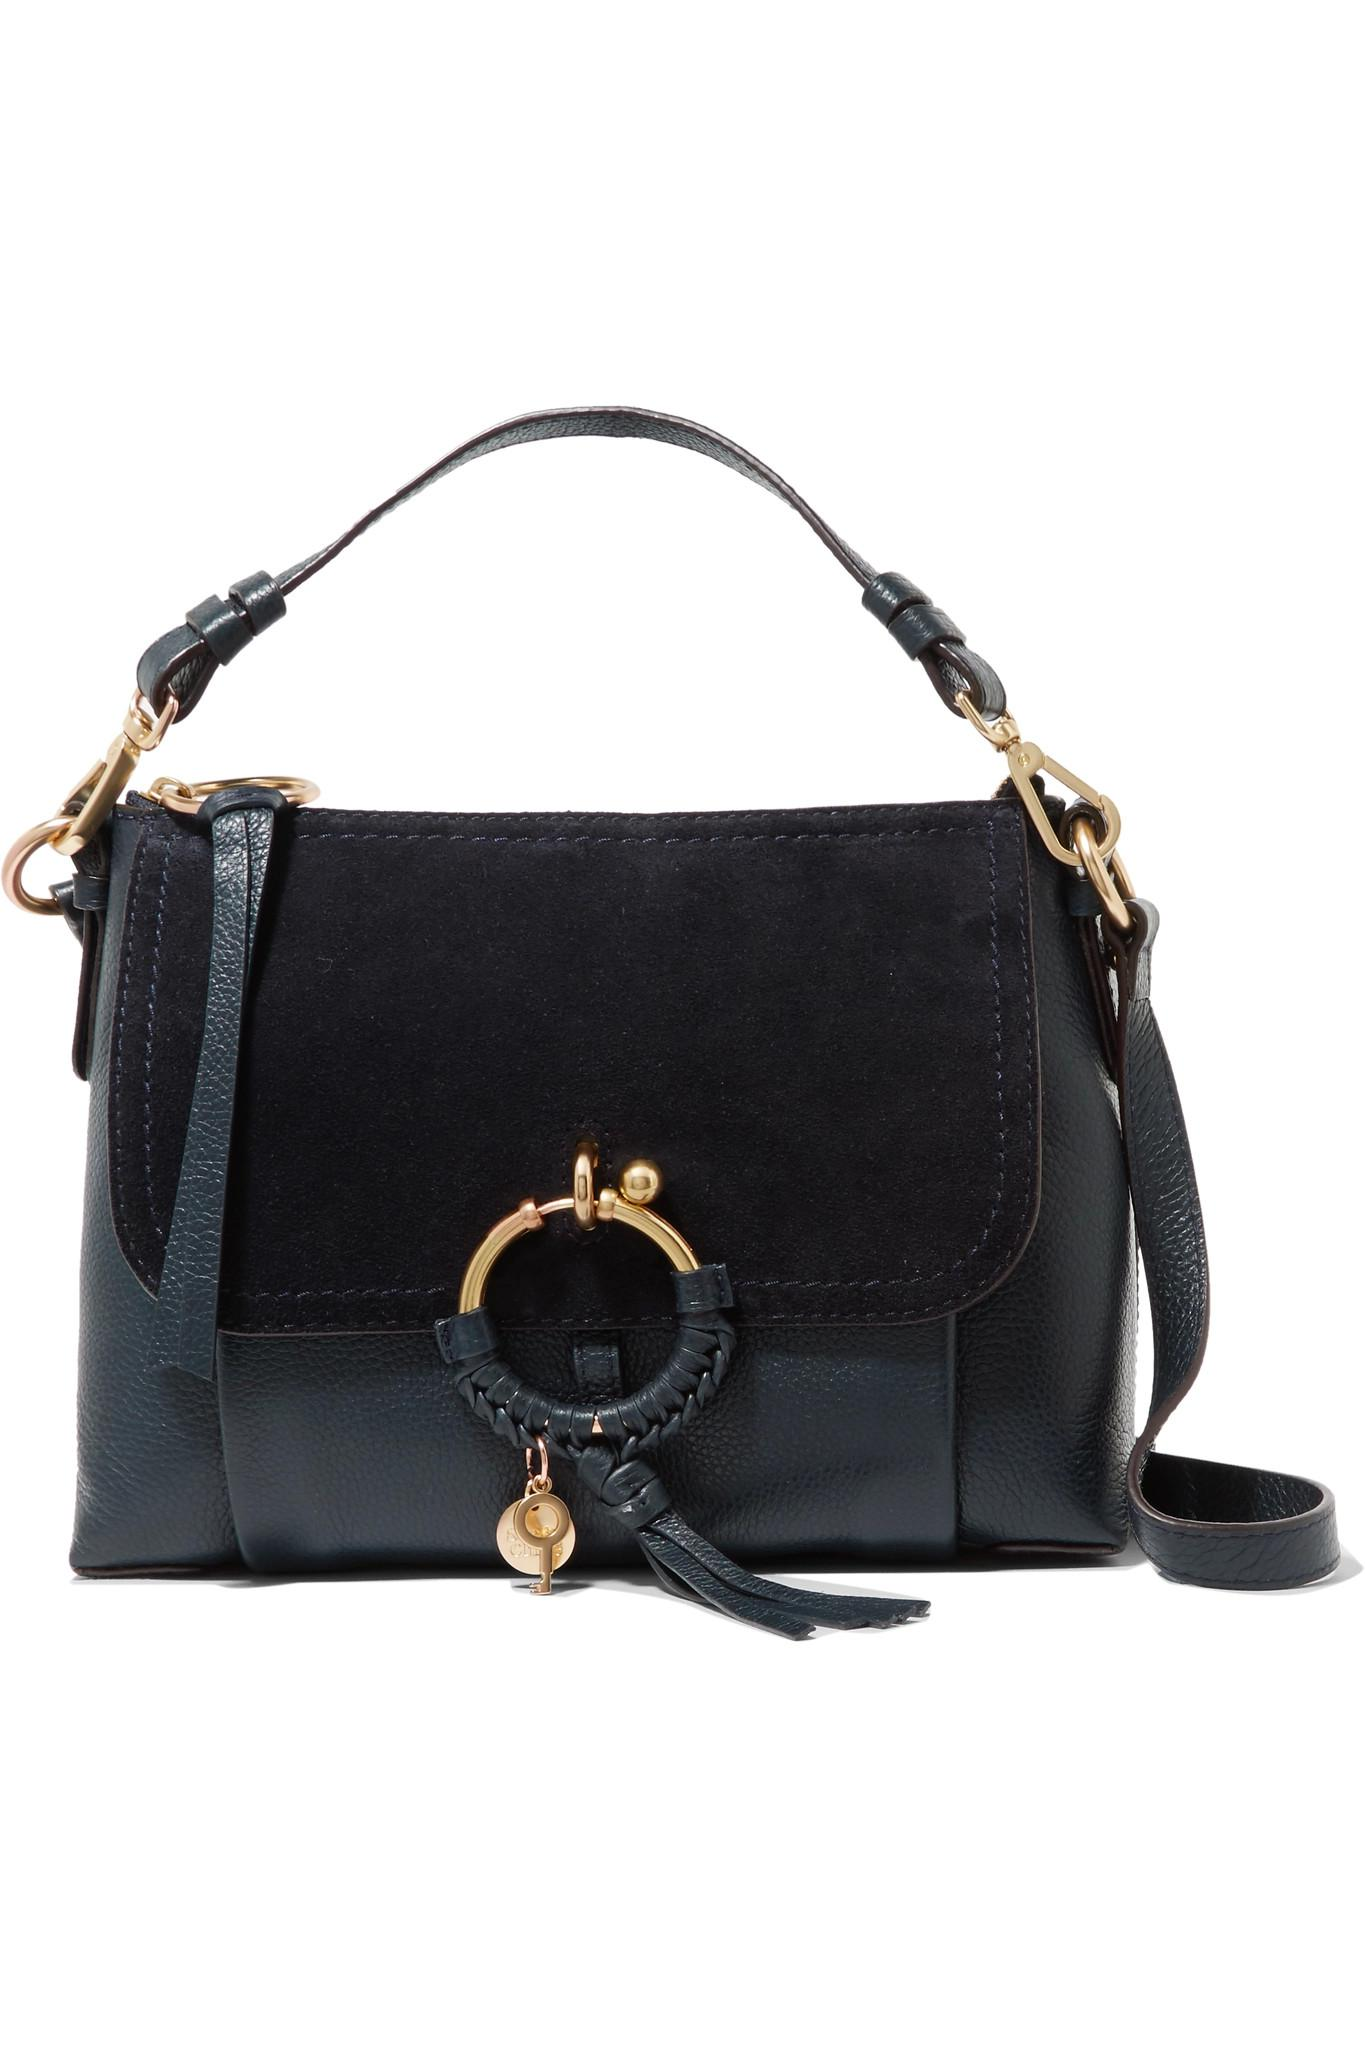 Joan Small Whipstitched Suede-paneled Textured-leather Shoulder Bag - Gray See By Chlo 5Imkp